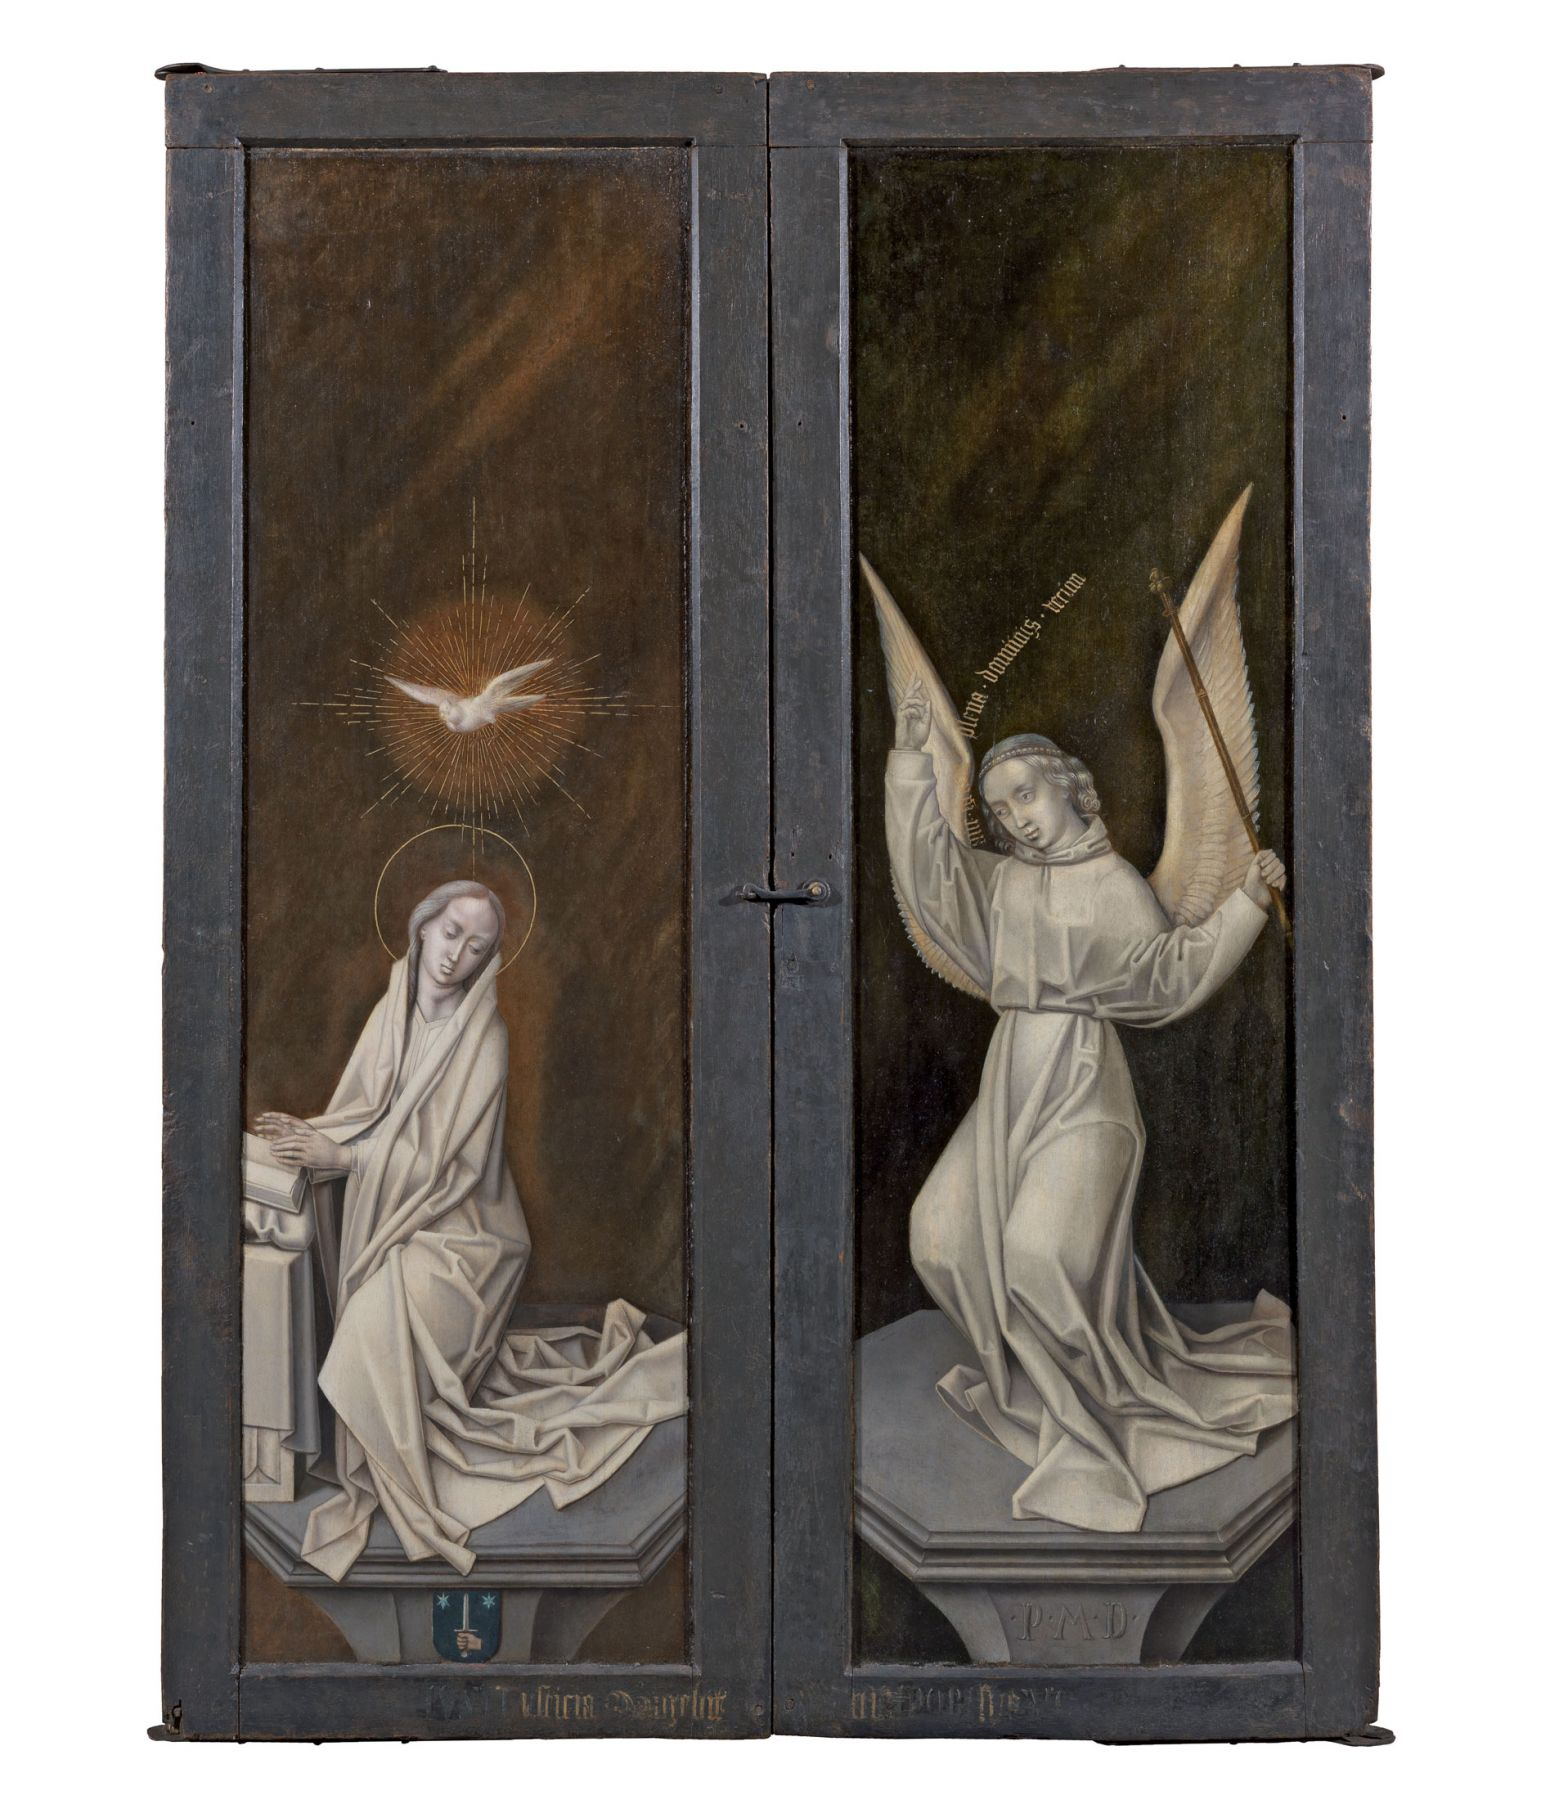 The Master of 1499(Ghent or Brussels, fl. c. 1490-c. 1520), Outer wings of theTriptych of the Virgin and Child depicting the Annunciation of the Virgin